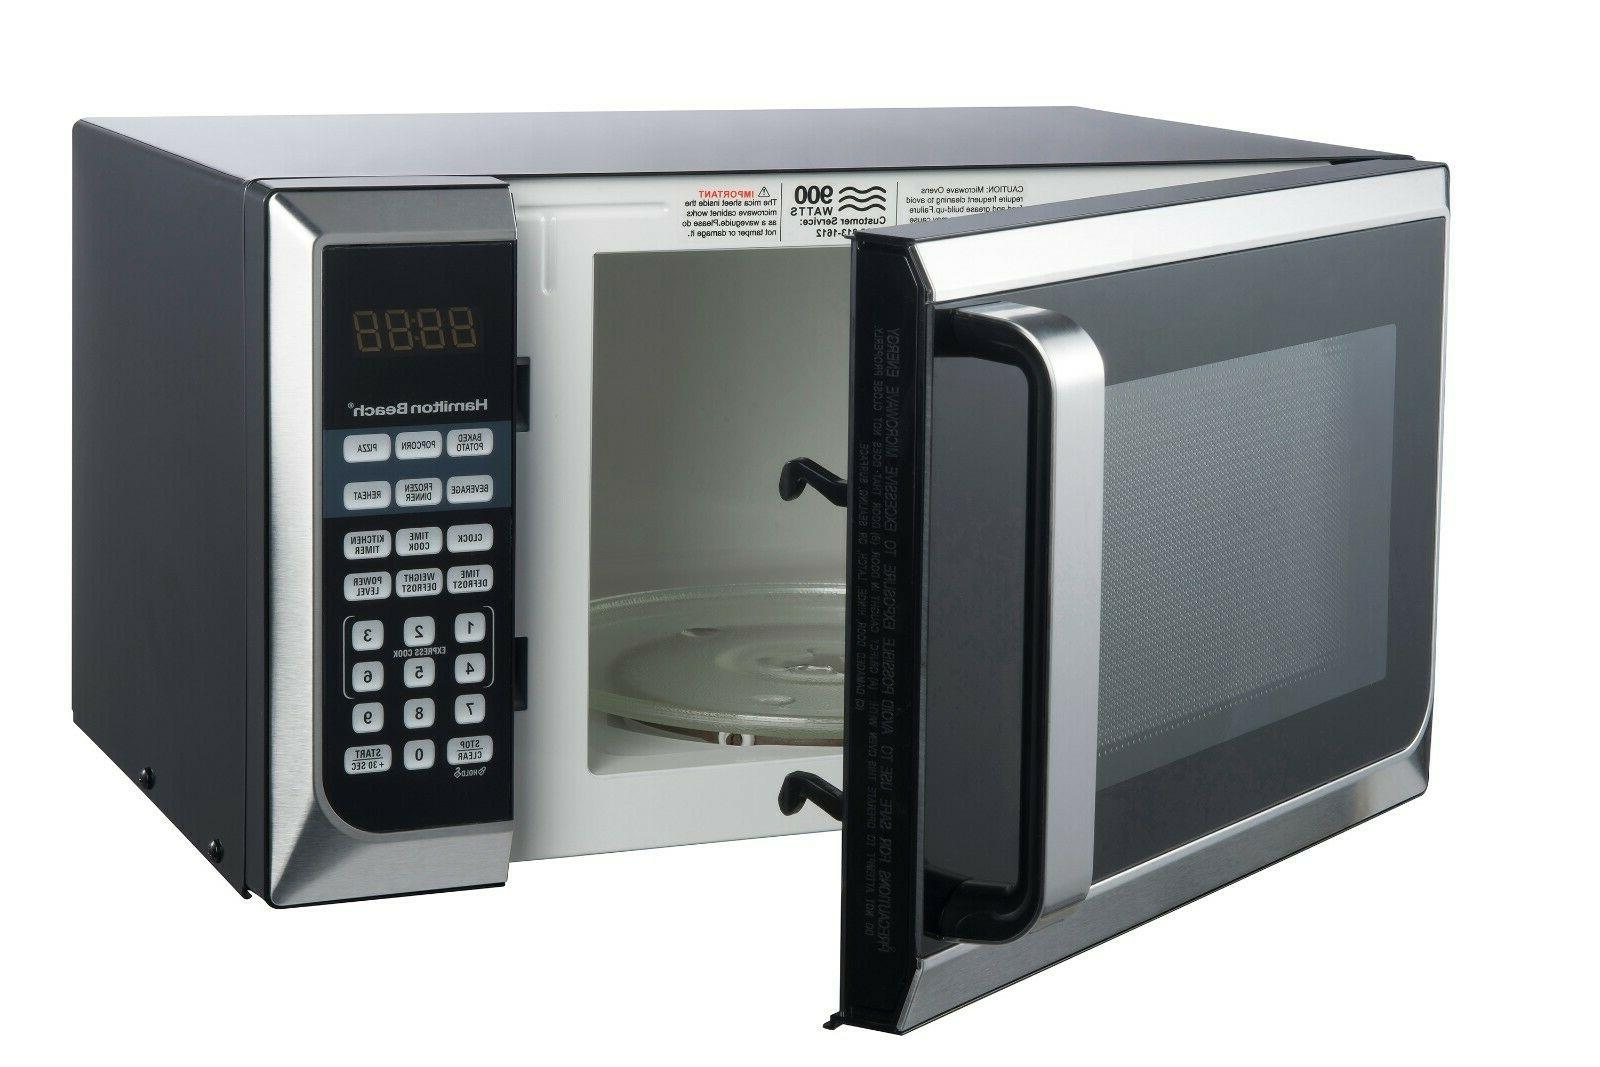 STAINLESS 0.9 cu.ft Microwave 900W cooking